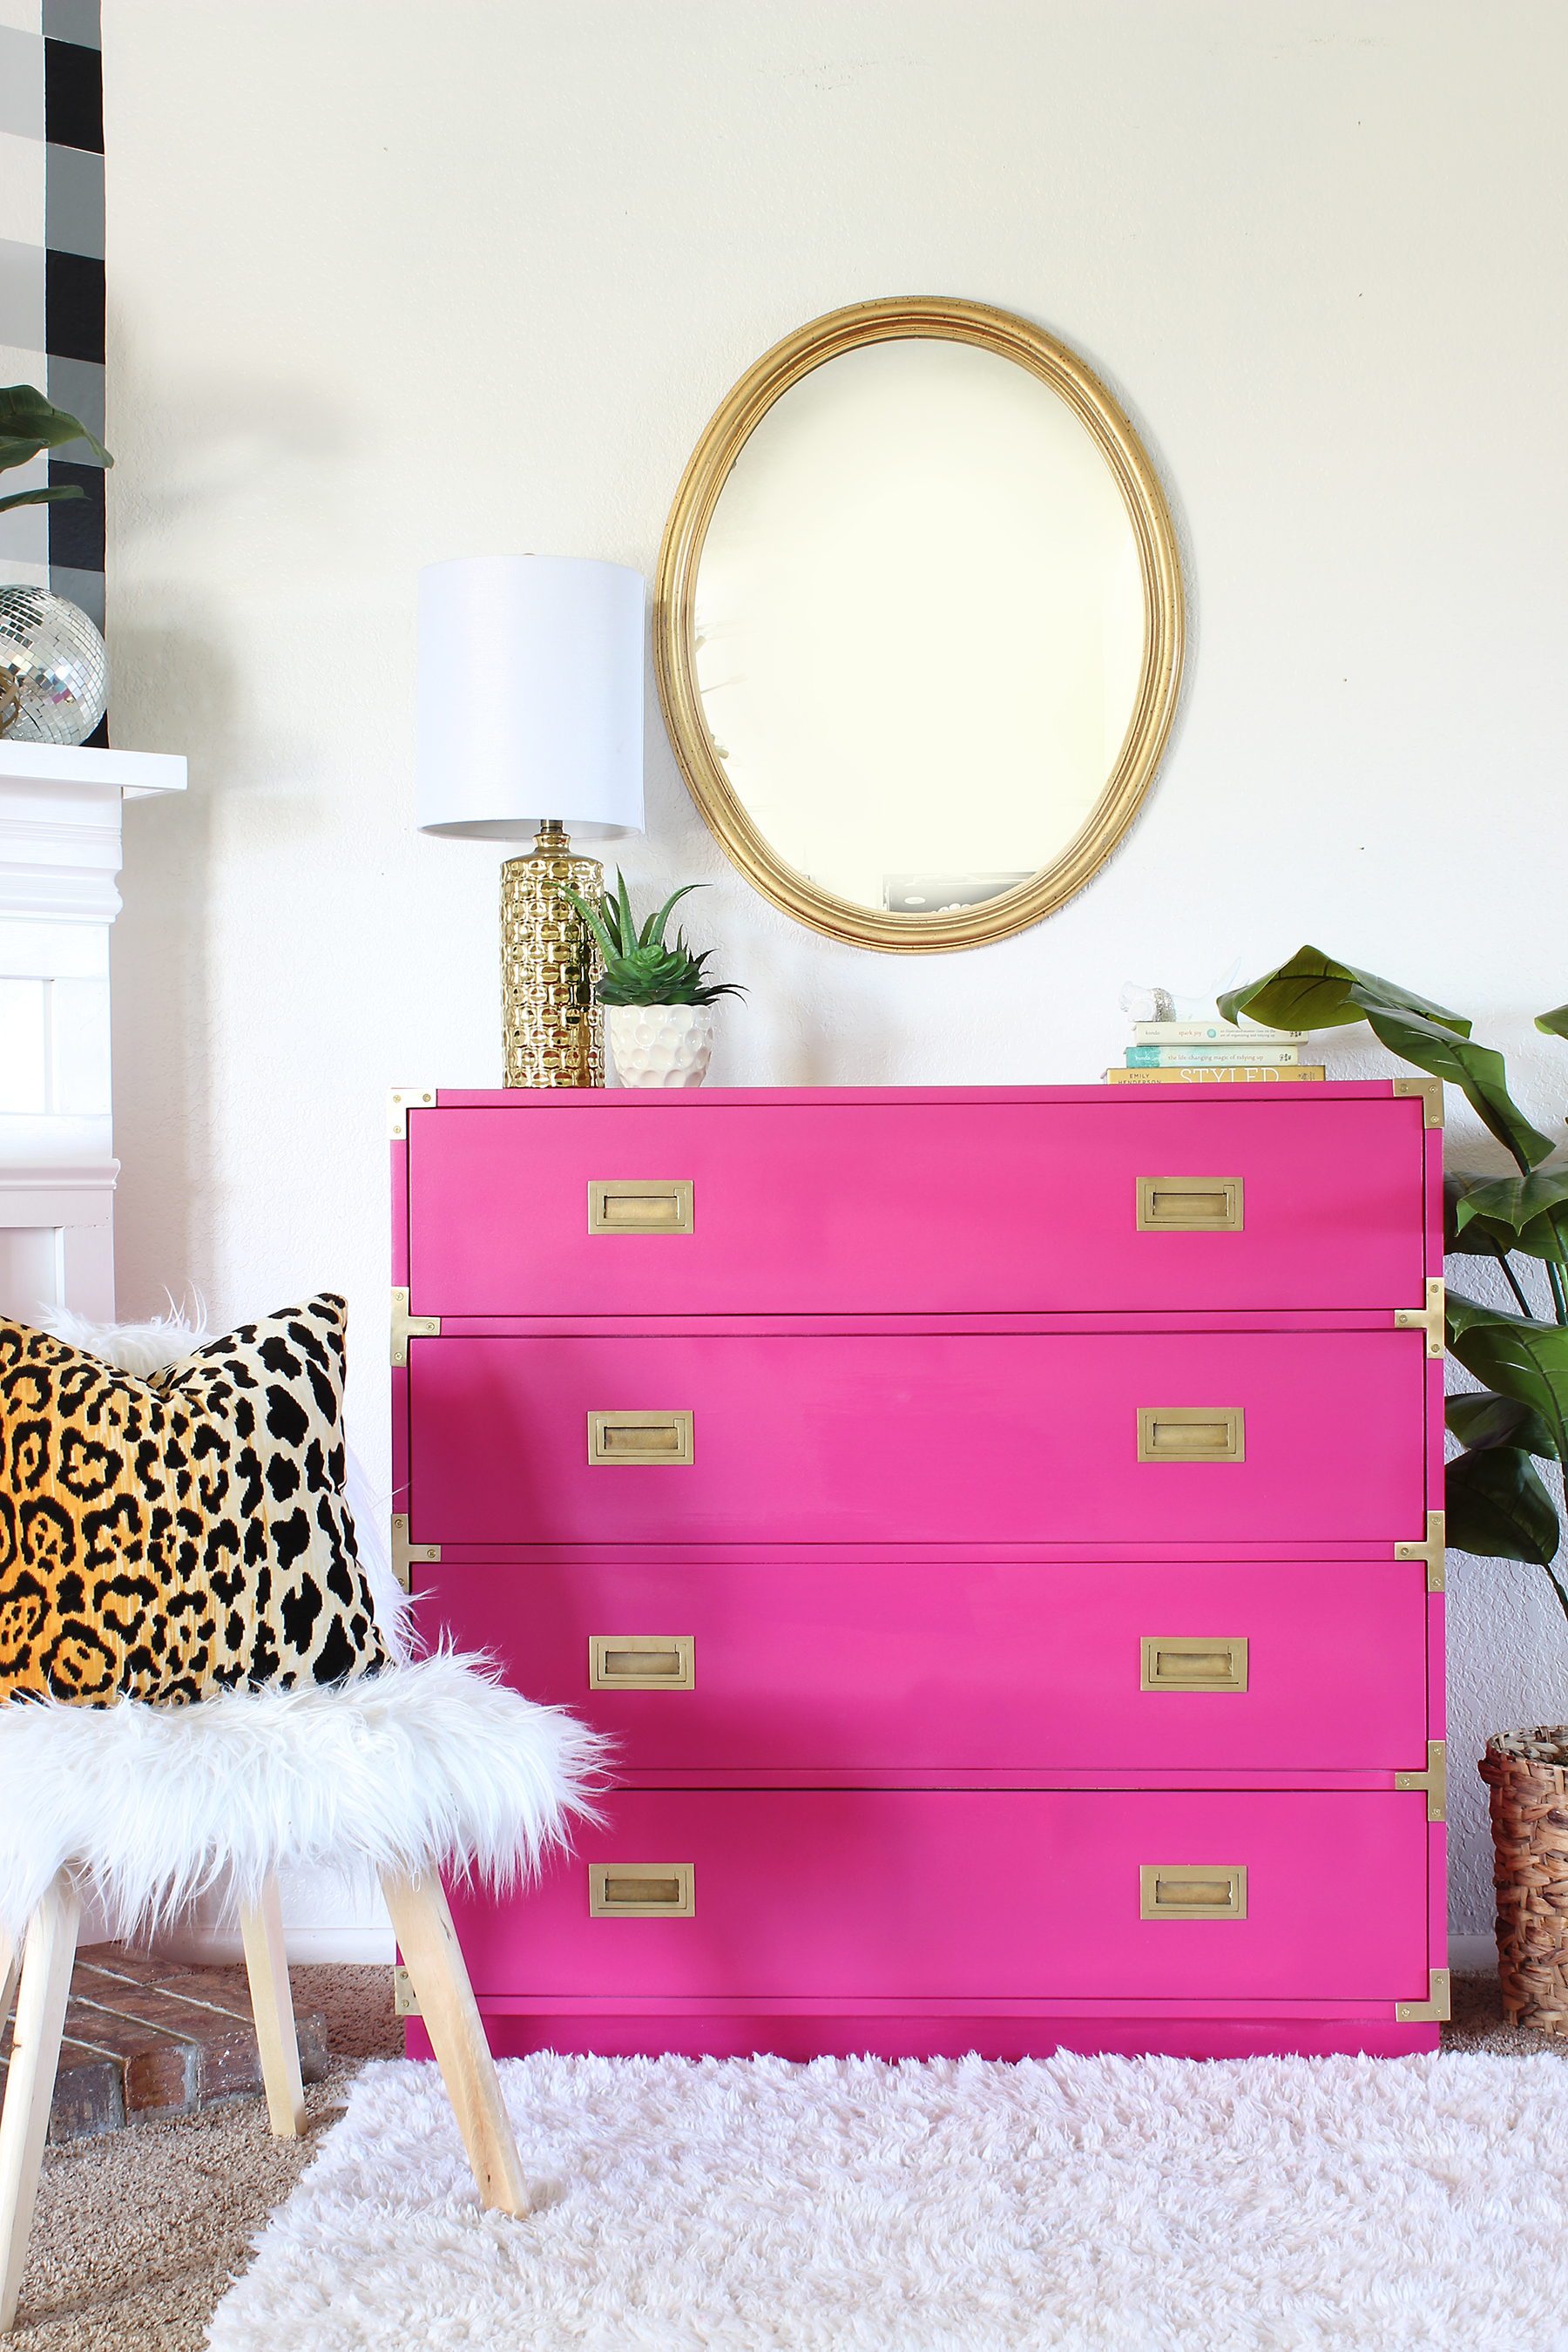 pink and gold painted furniture-campaign-dresser Pink and Gold Painted Furniture Makeovers to get you inspired! #PinkPaintedFurniture #shabbychic #pale #girls #blush #rose #hotpink #blushpink via @thatsweettealife